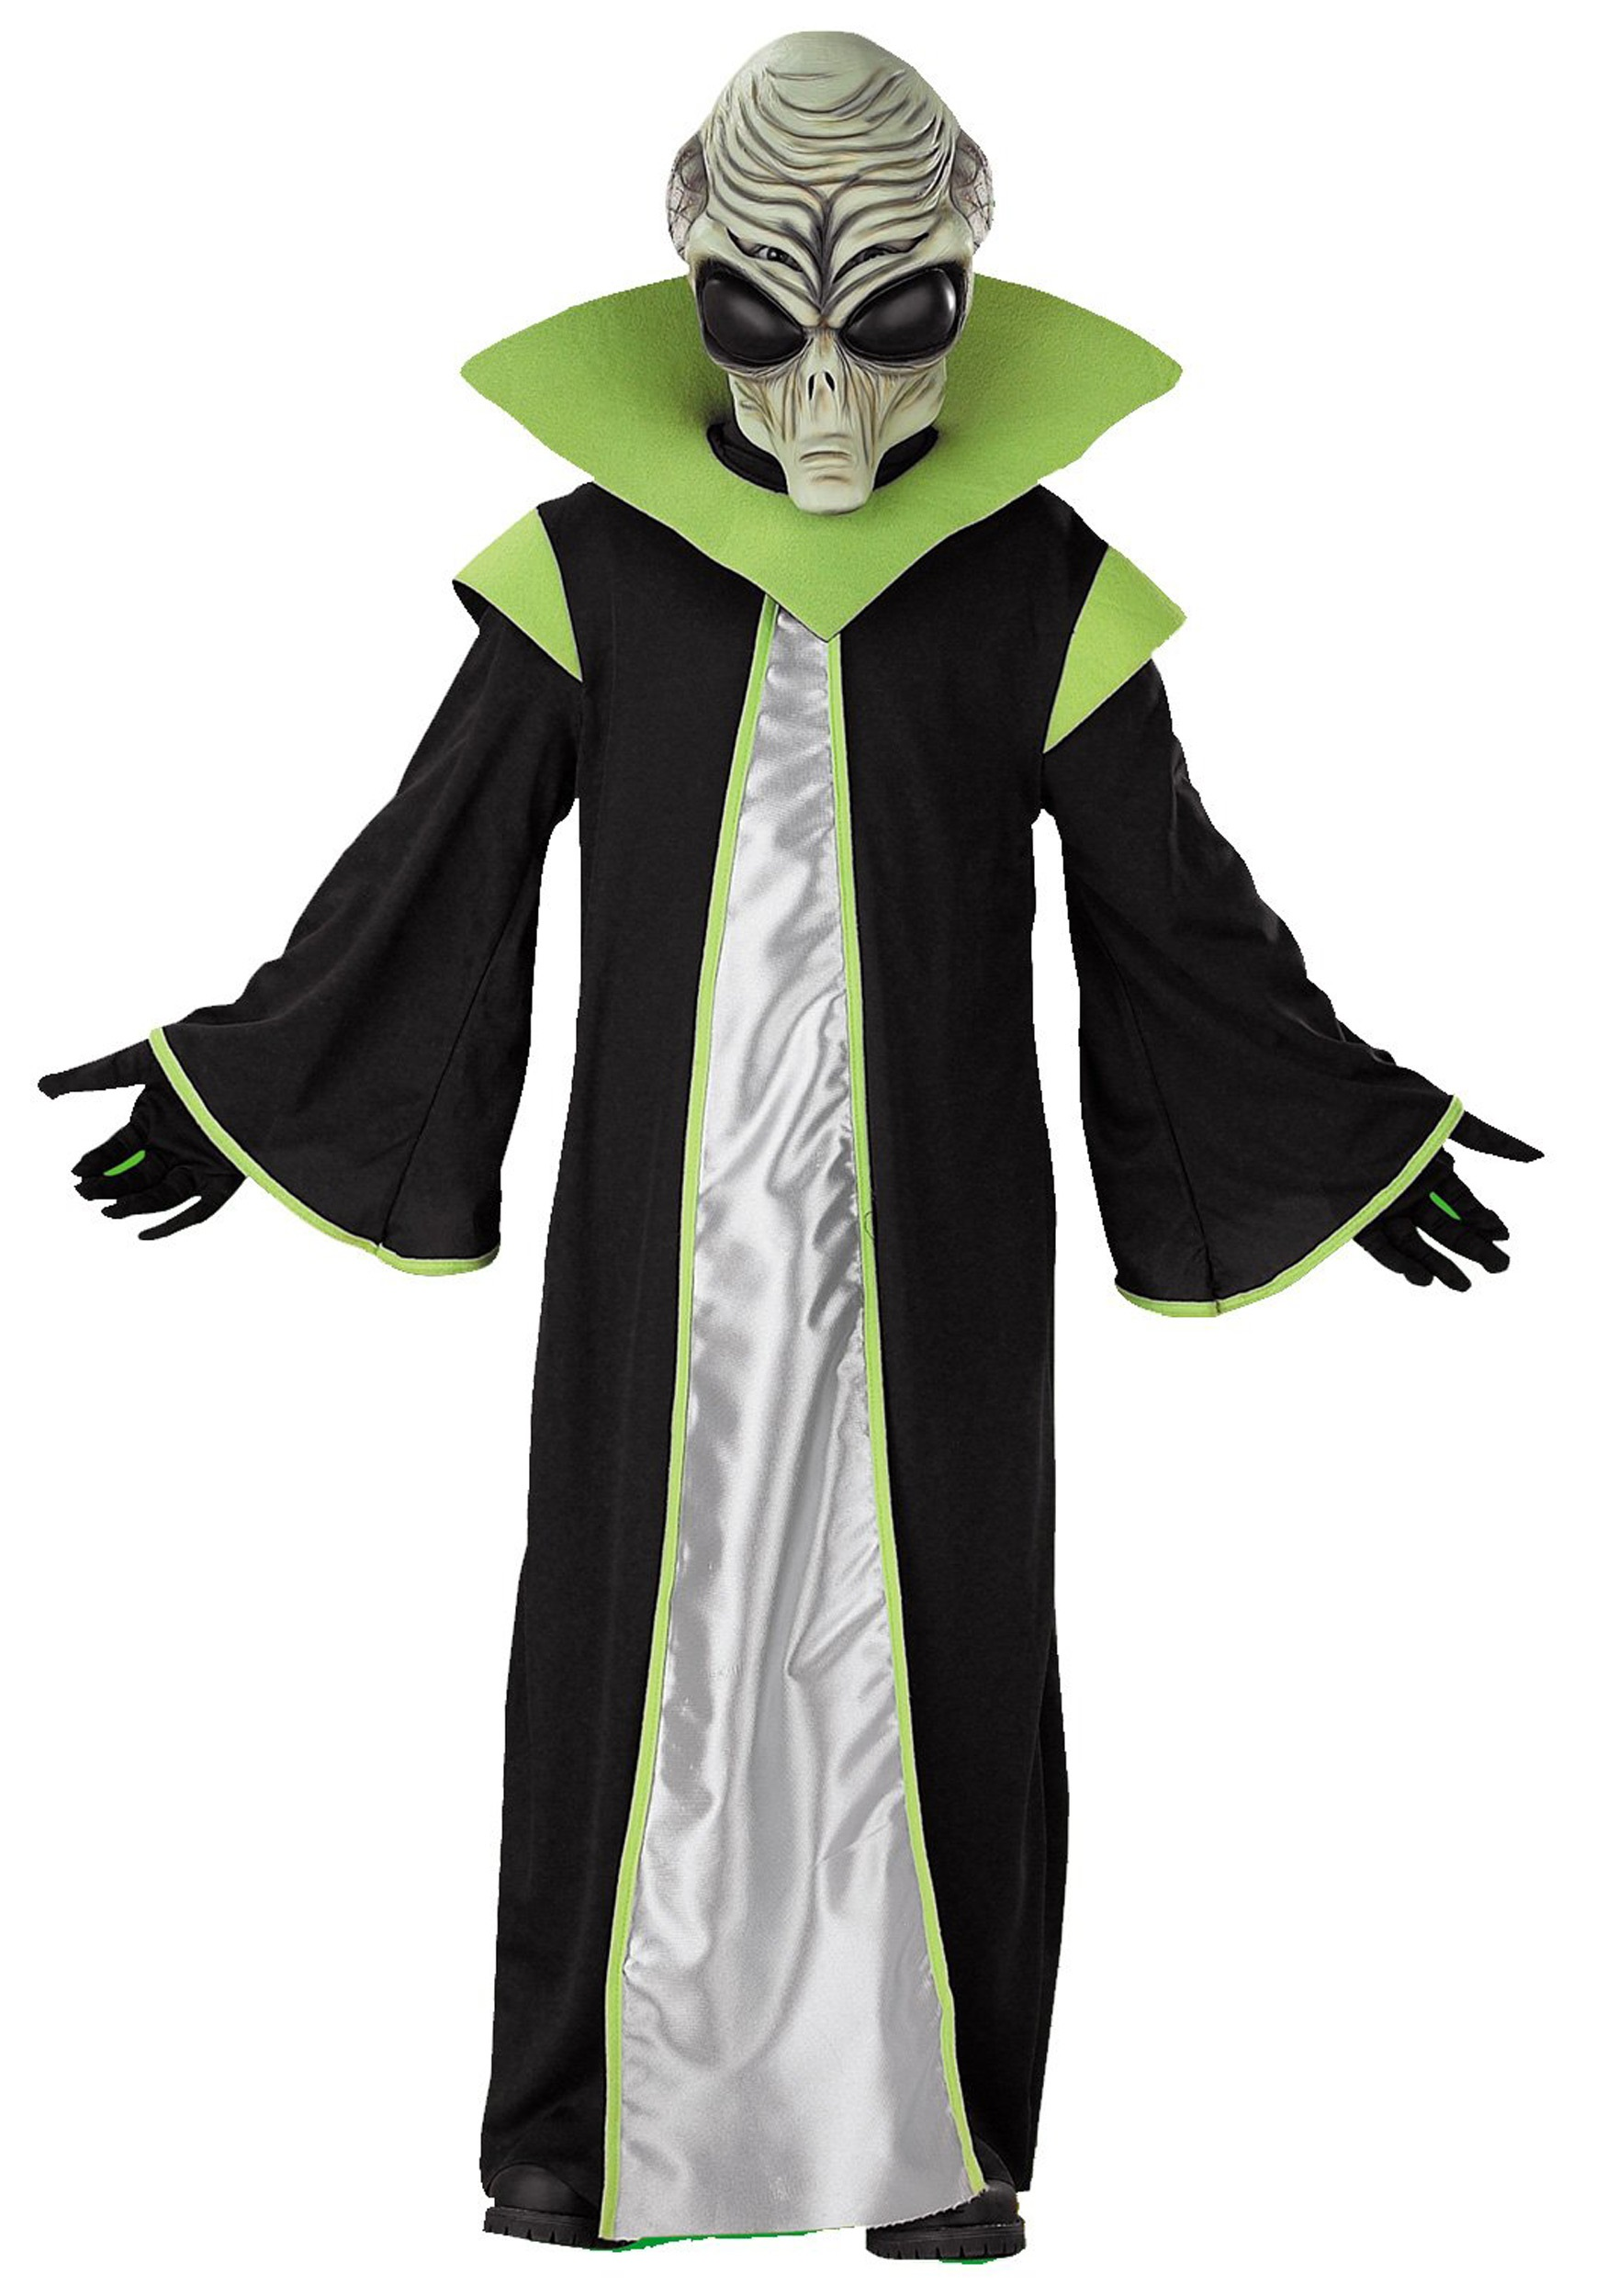 Kids Deluxe Alien Costume  sc 1 st  Halloween Costumes & Kids Deluxe Alien Costume - Halloween Costume Ideas 2016